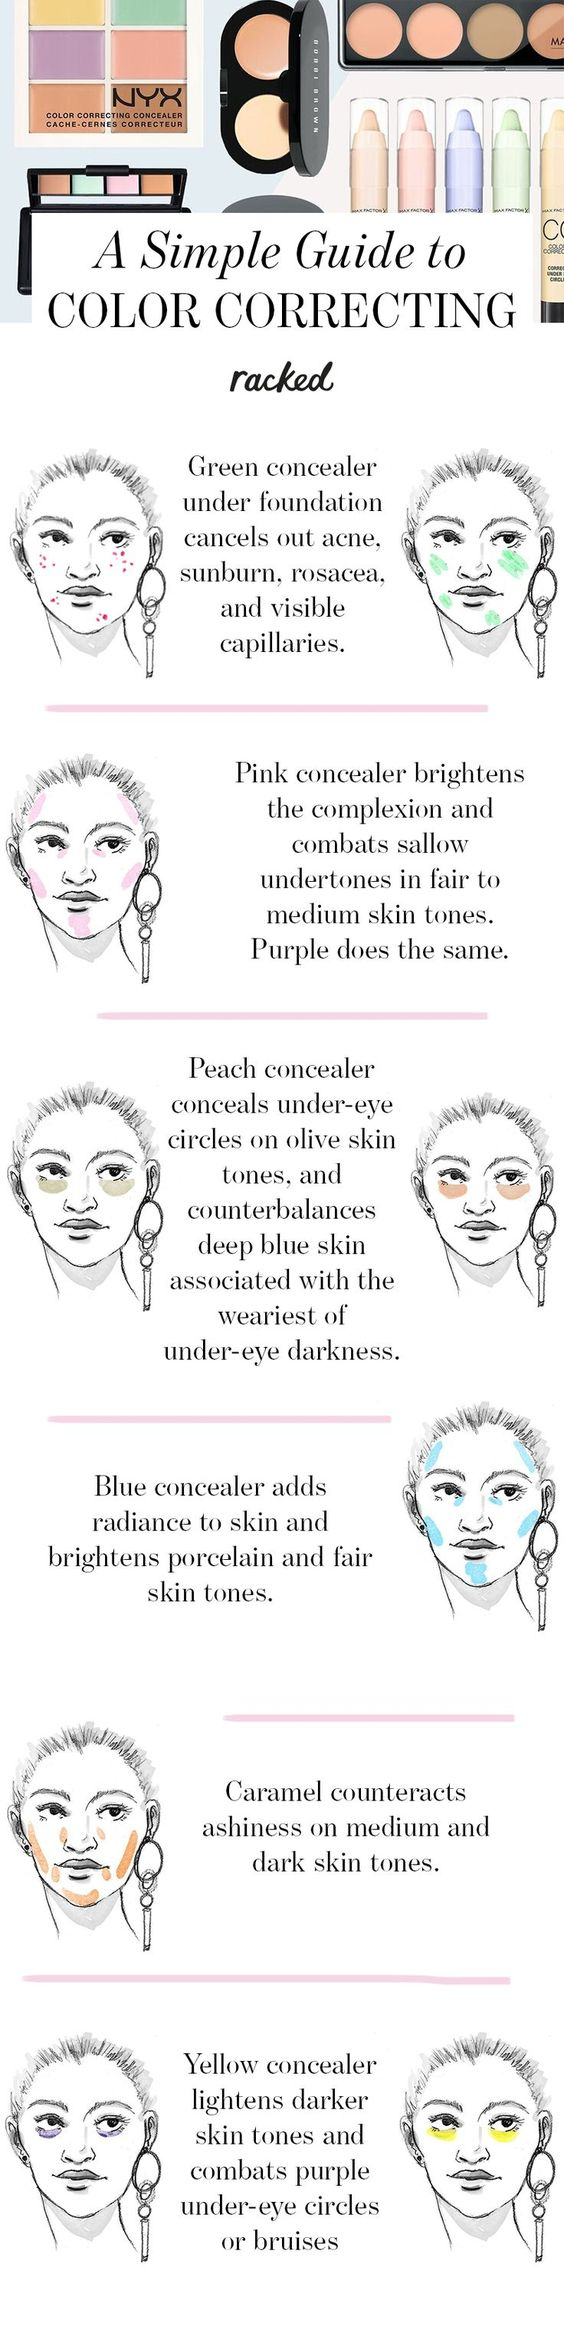 7 Tips For Using Color Correcting Makeup